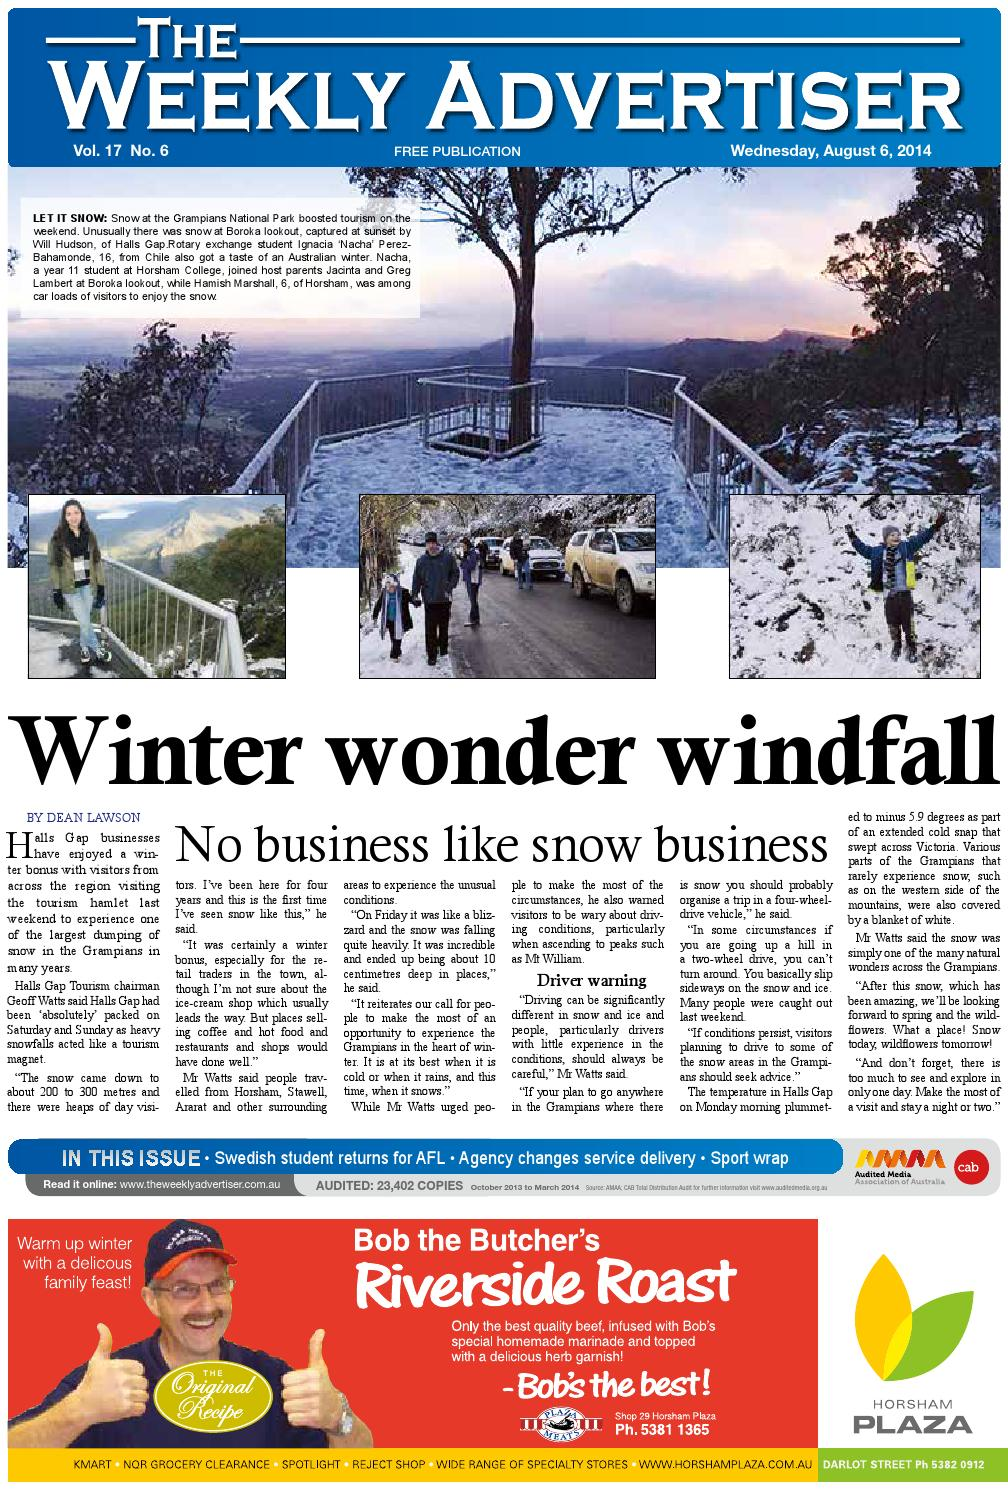 The Weekly Advertiser Wednesday August 6 2014 By The Weekly Advertiser Issuu